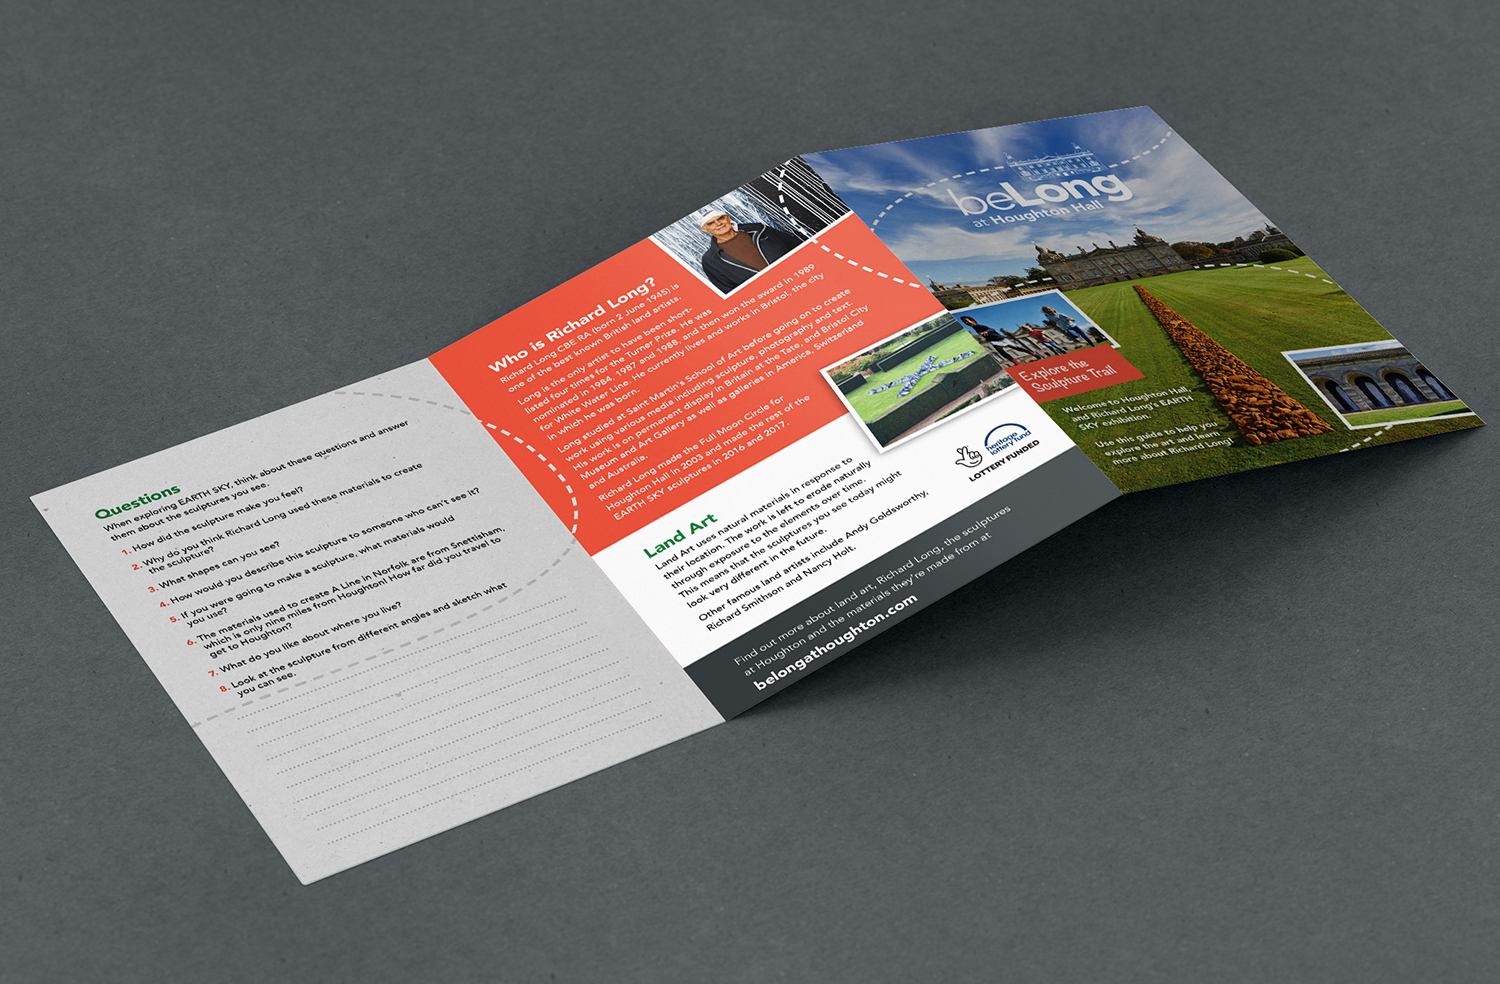 BeLong at Houghton fold out leaflet